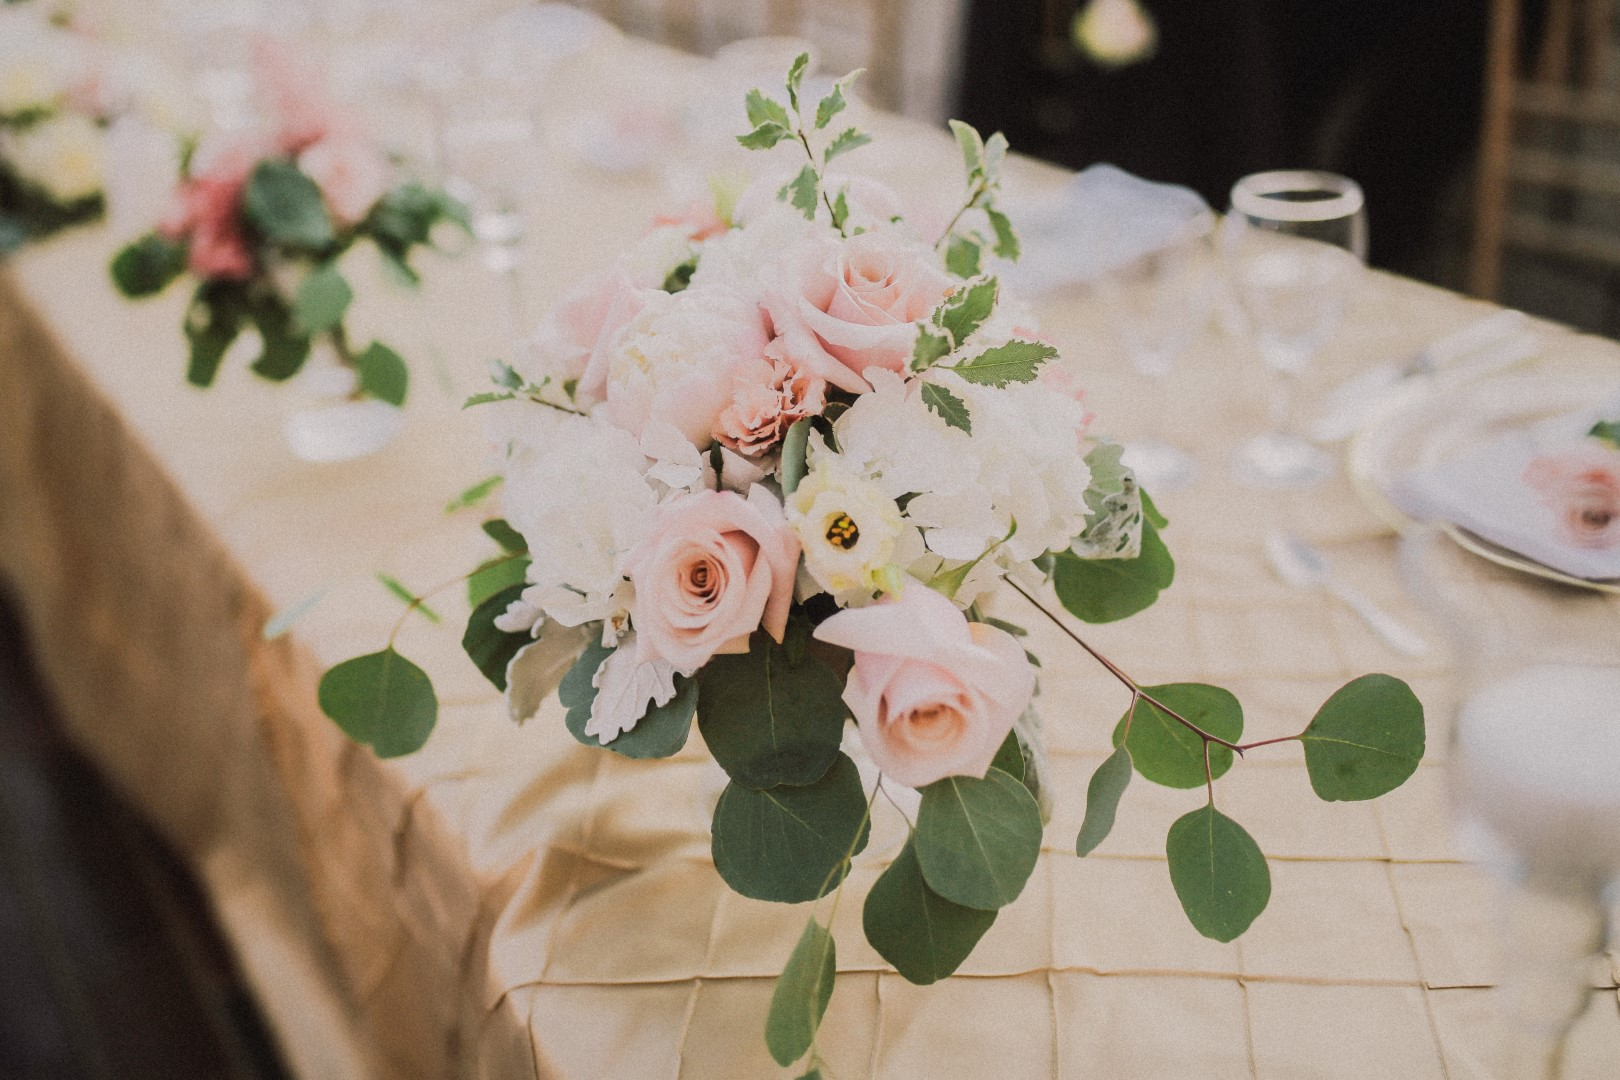 This is a close up of the wedding reception table. The tablecloth is blush as well as the flowers. Some of the flowers are white. There are plates and glasses in the back.